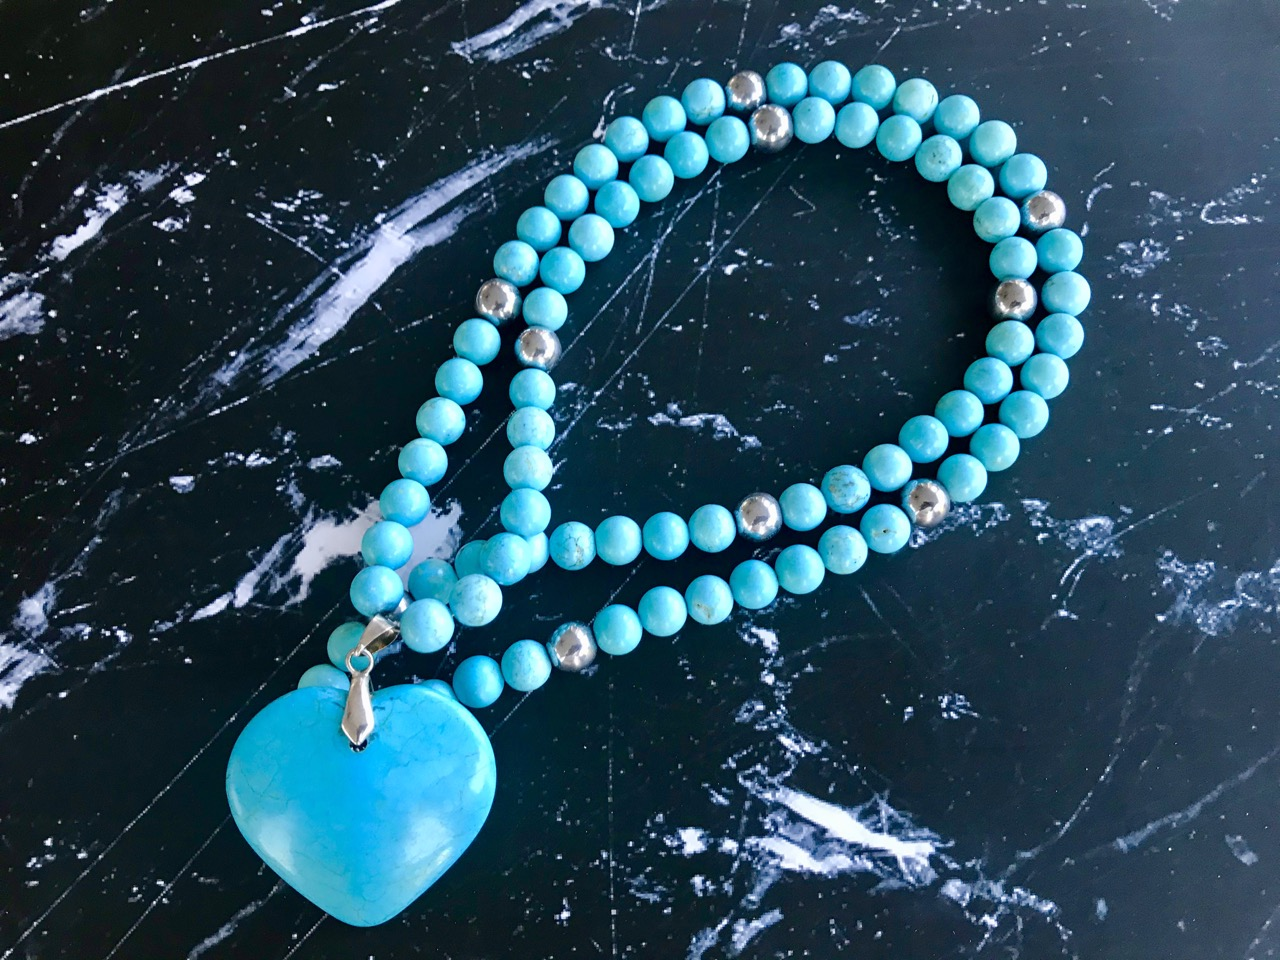 Turquoise Stone Heart - Necklace with Turquoise Gemstones & Stone Heart